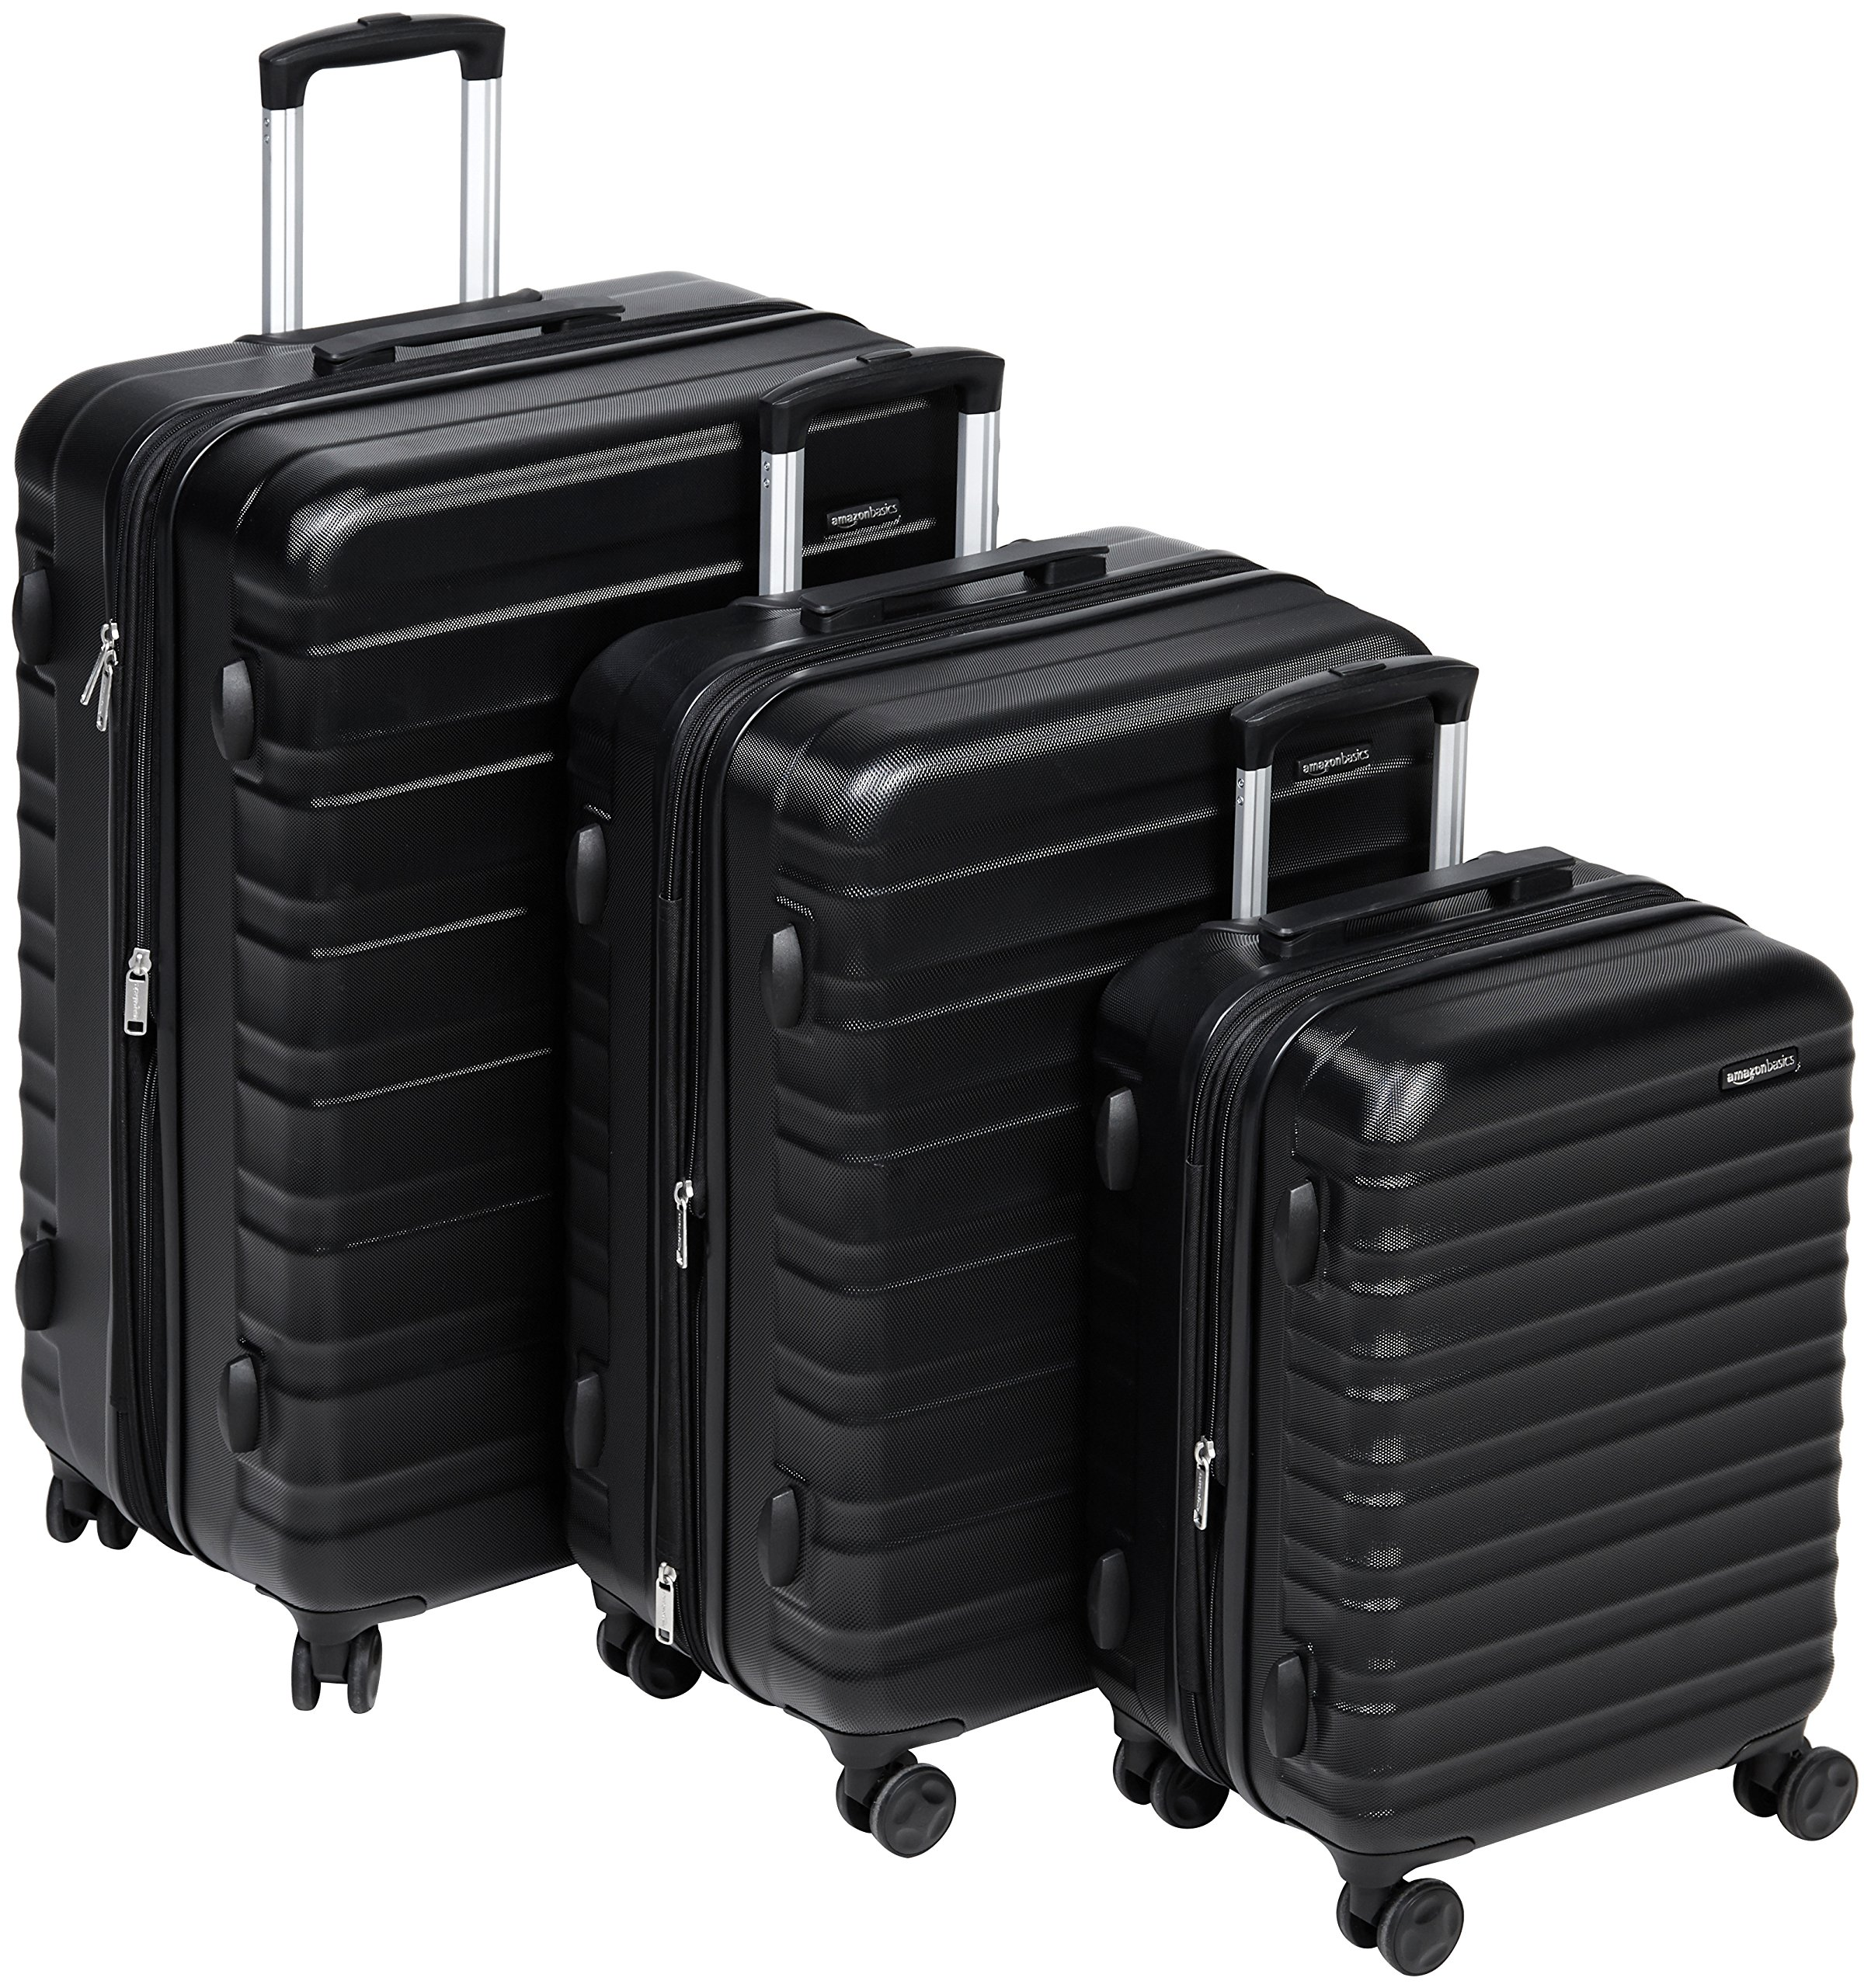 AmazonBasics Hardside Spinner Luggage - 3 Piece Set (20'', 24'', 28''), Black by AmazonBasics